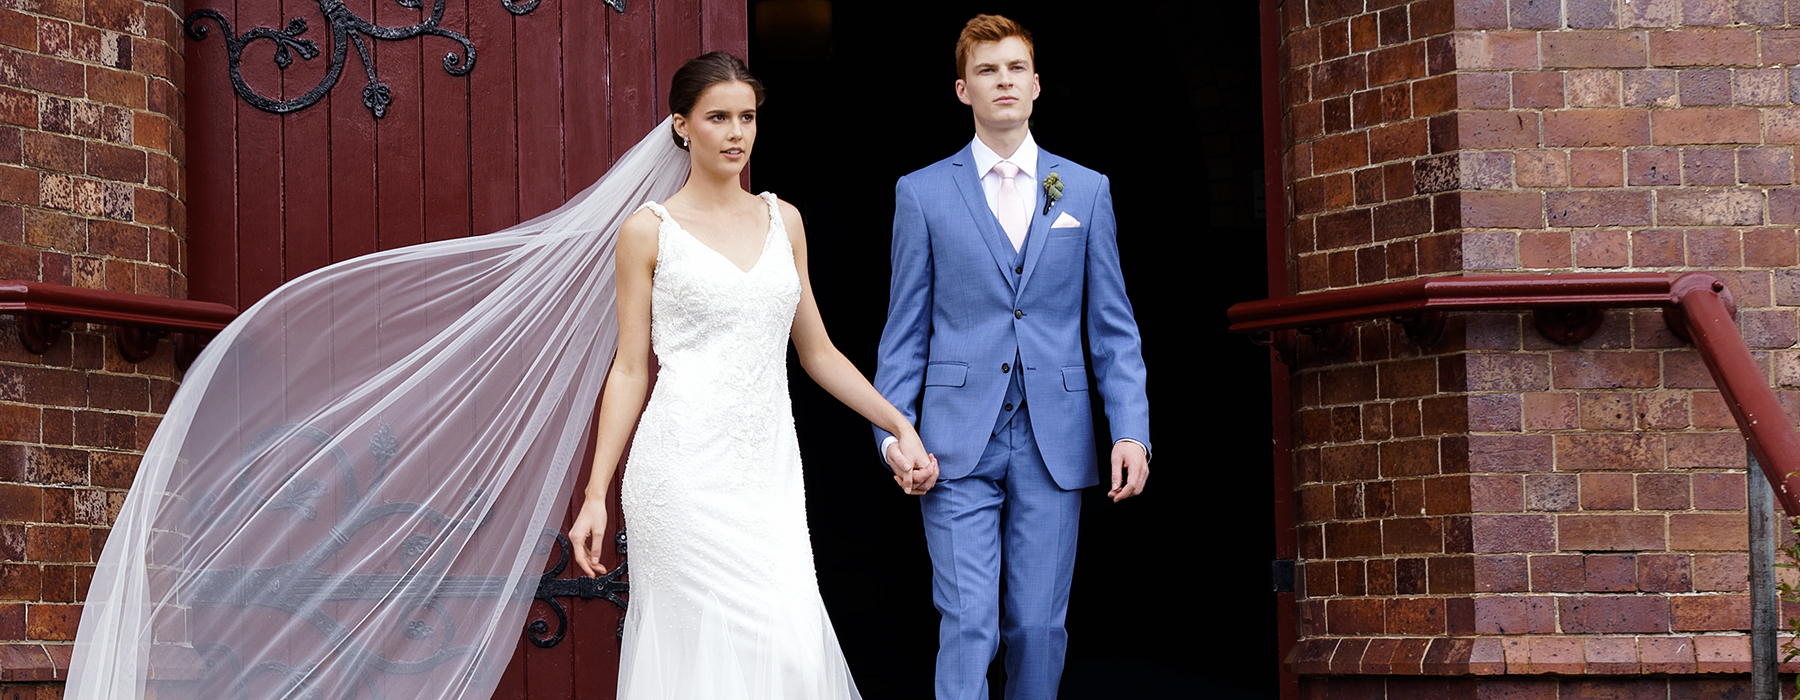 What to Wear: A grooms guide on wedding styles and dressing etiquette